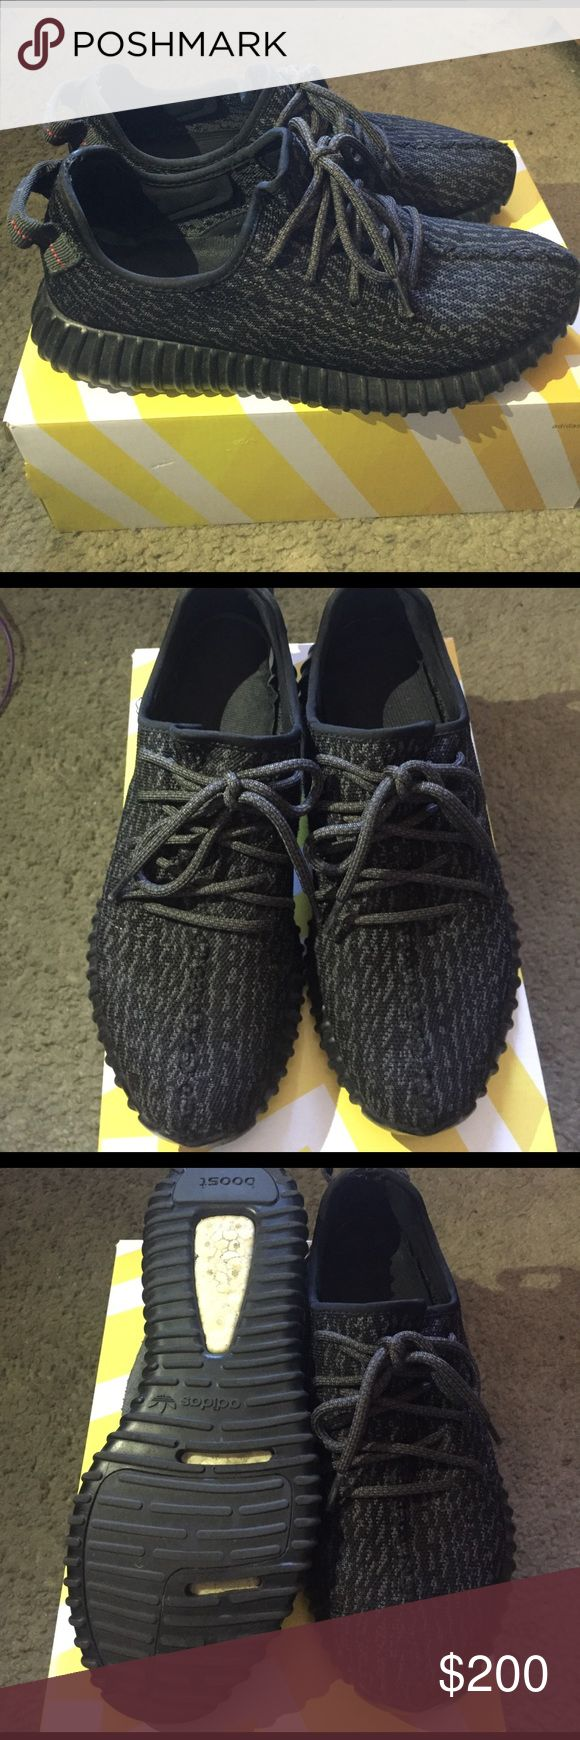 Adidas Yeezy Boost 350 pirate black All black Adidas Yeezy Boost 350 Size 9.5 , used , but good condition. Were well taken care of. Adidas Shoes Sneakers